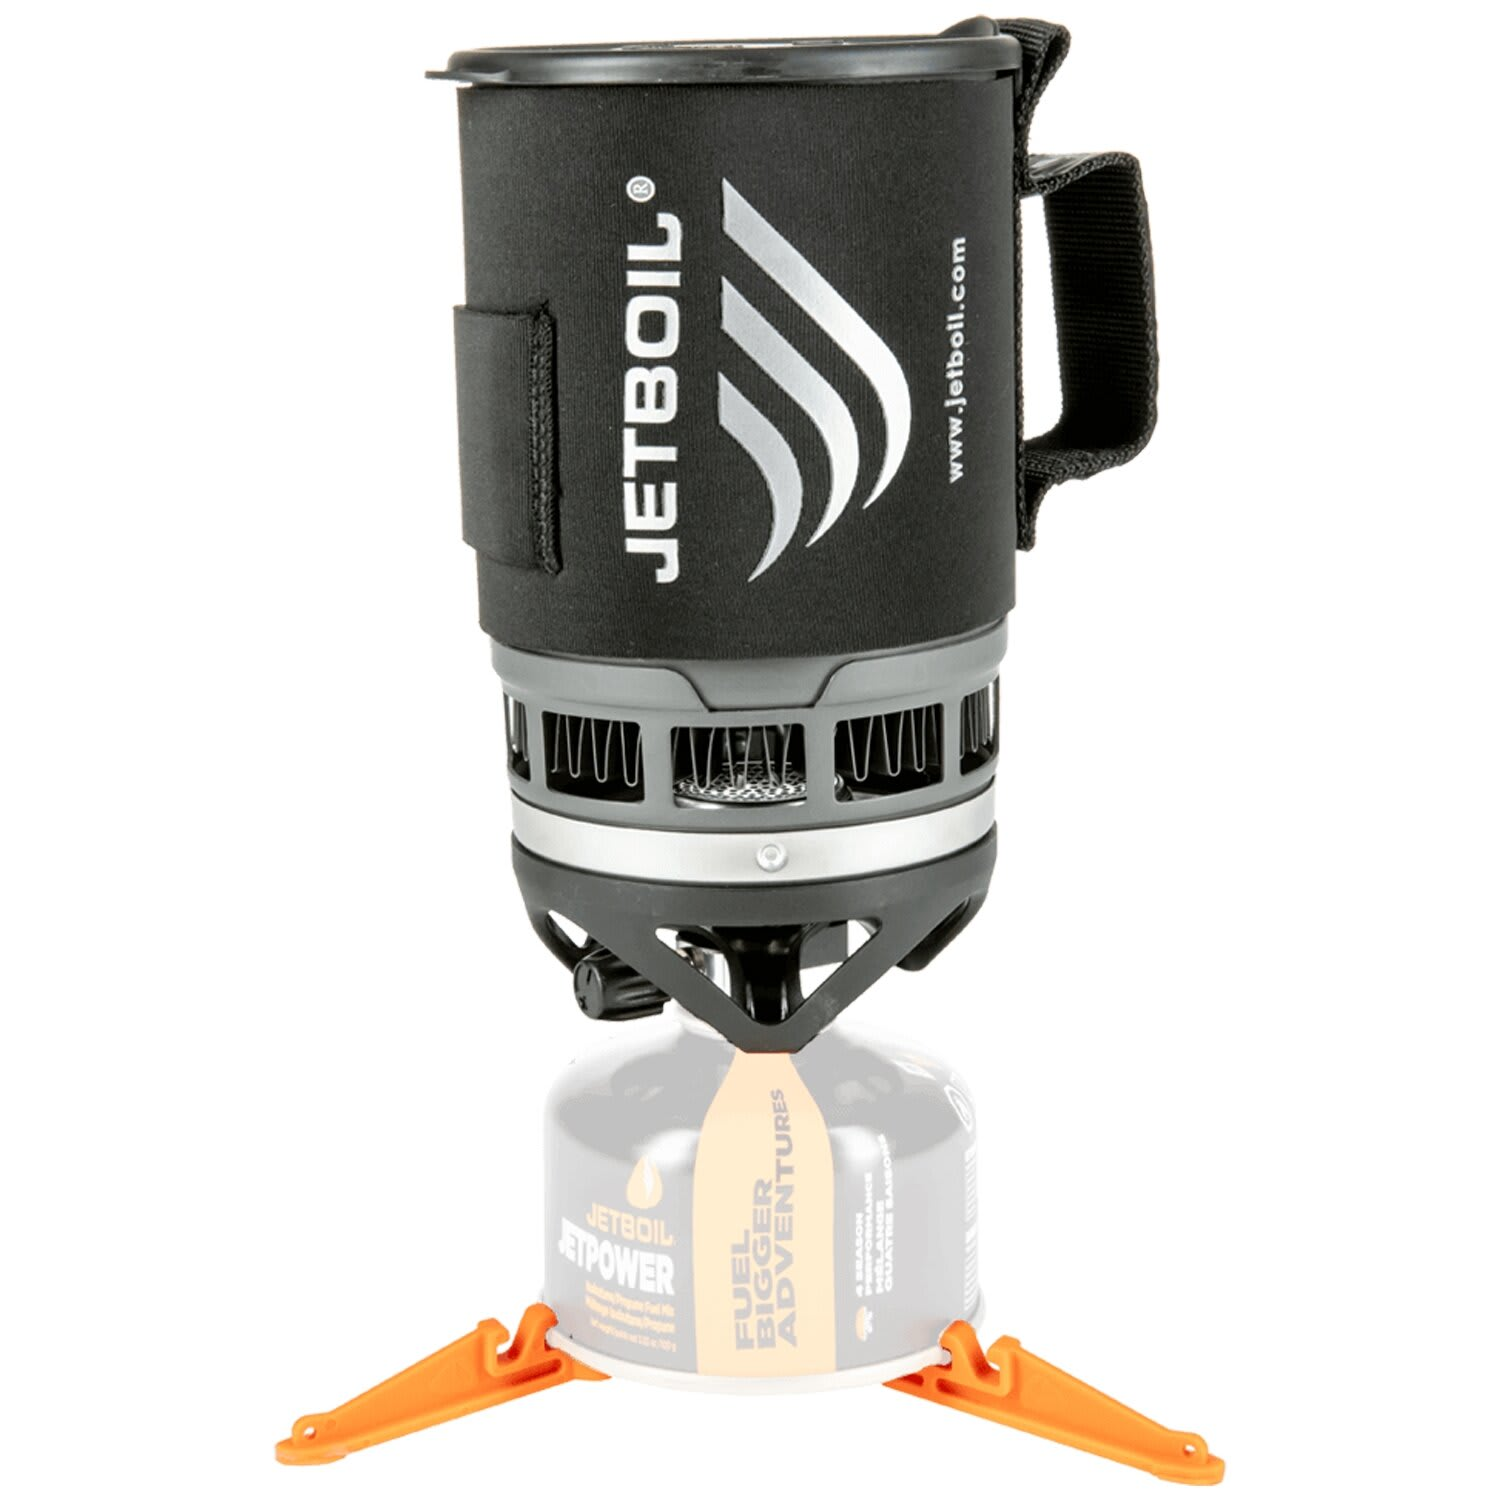 Jetboil Zip Cooking System - Carbon